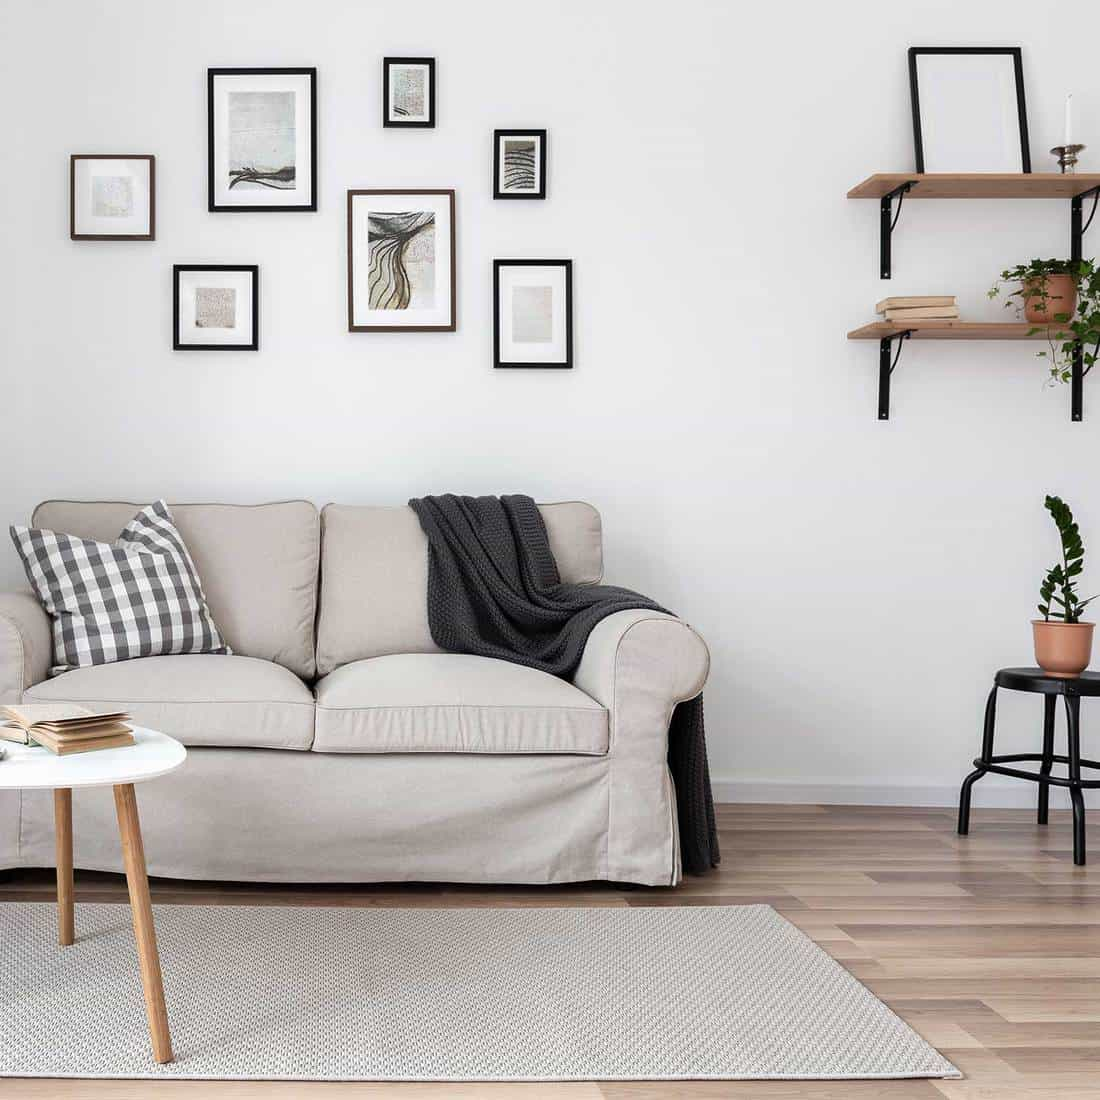 Simple living room with wall frames, sofa and coffee table